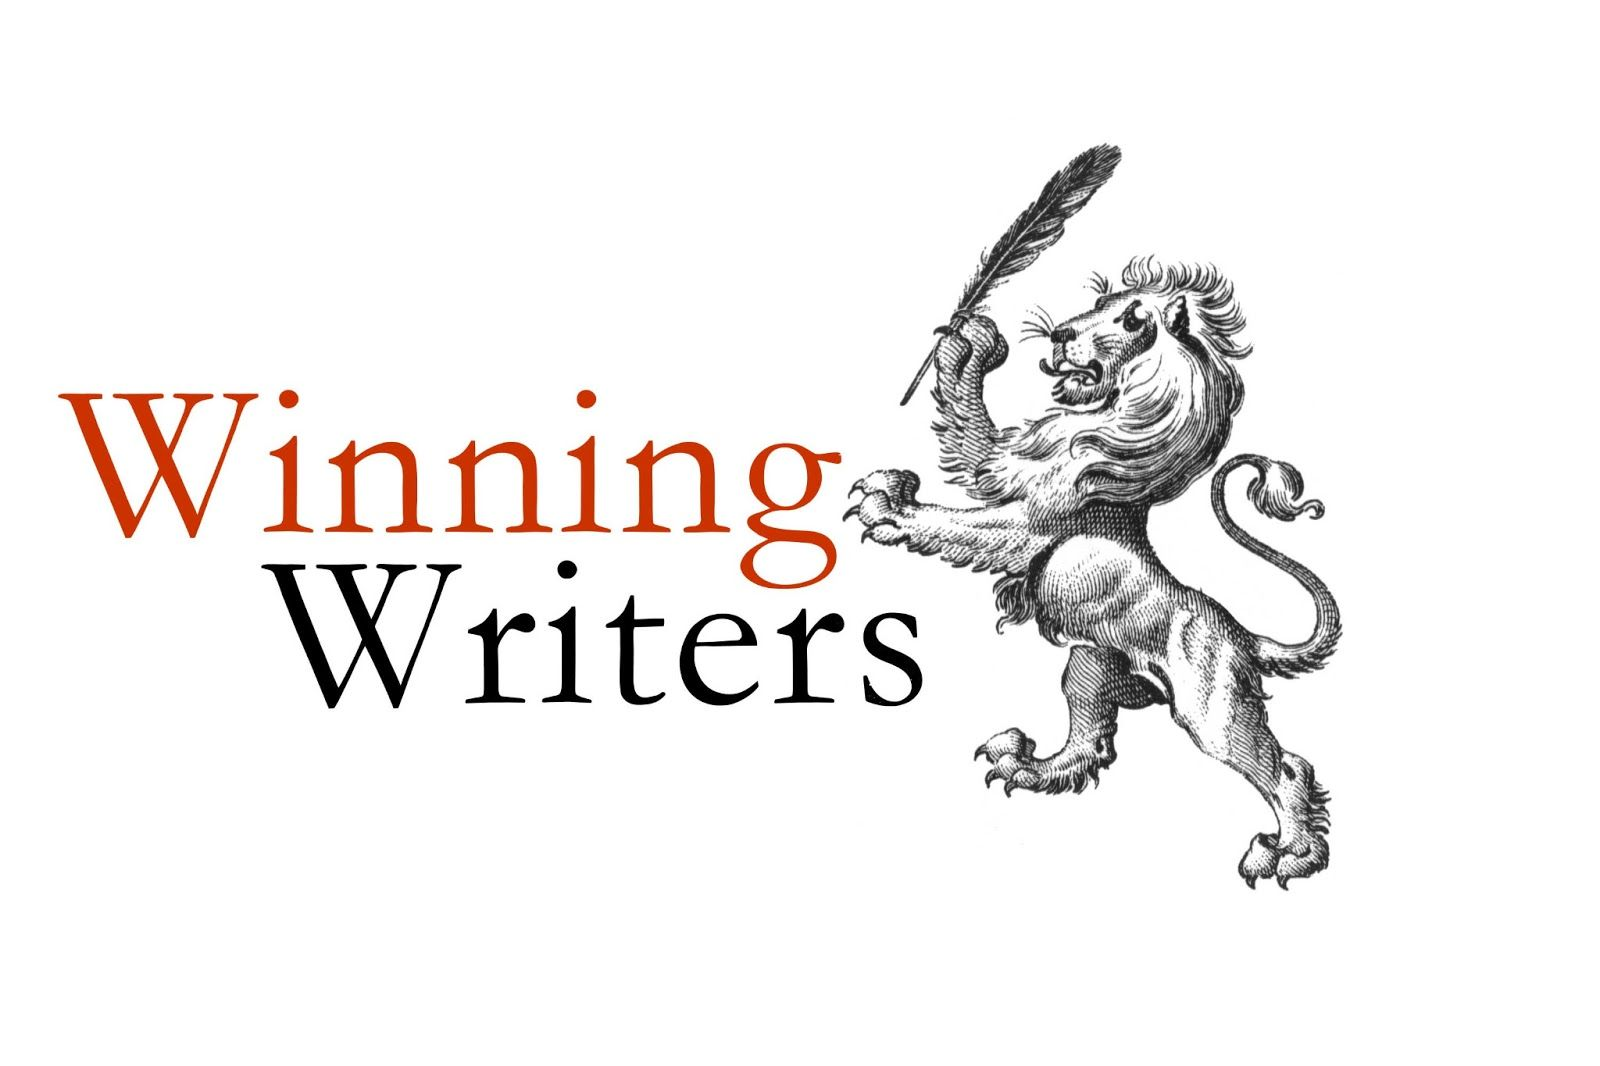 Winning Writers is a website for poets and fiction writers